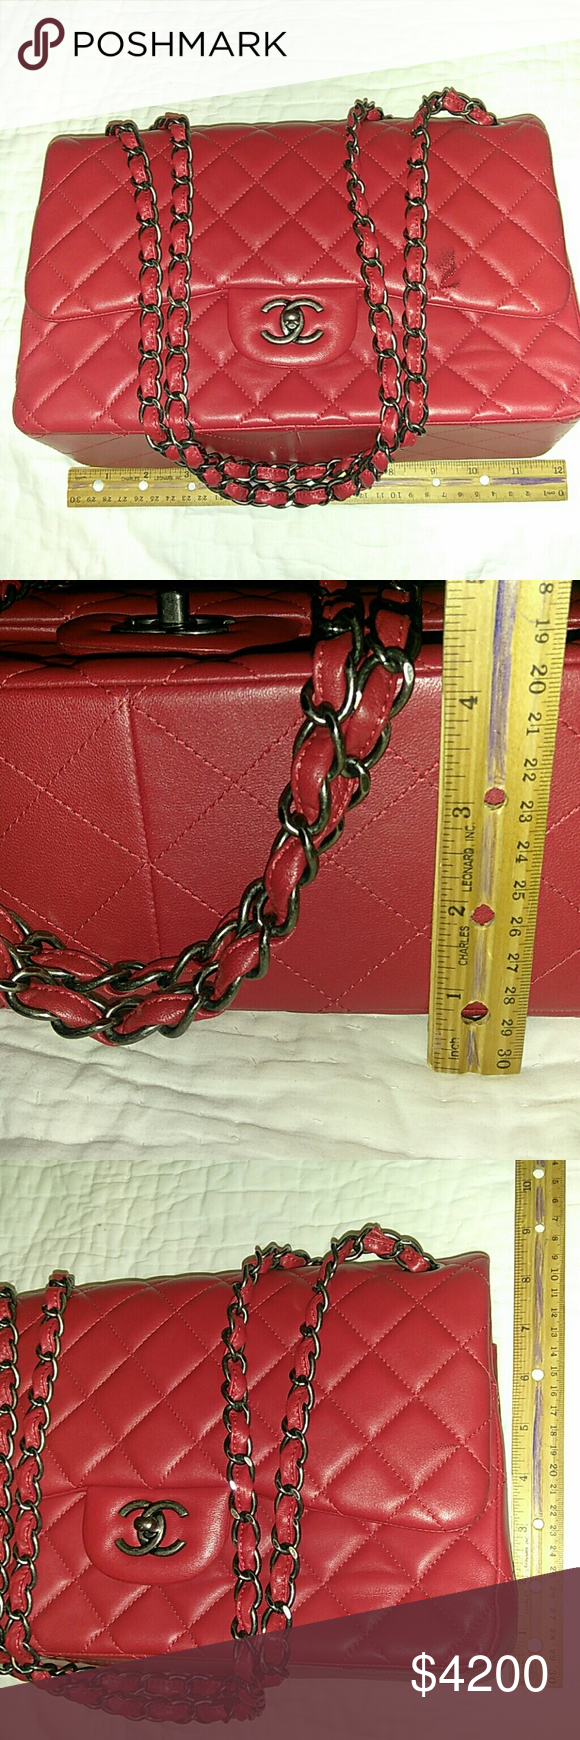 929a21019af184 Chanel Classic caviar double flap red bag Only used 2 times, it's still in  perfect condition. Classic Chanel caviar Double flap bag in red color.